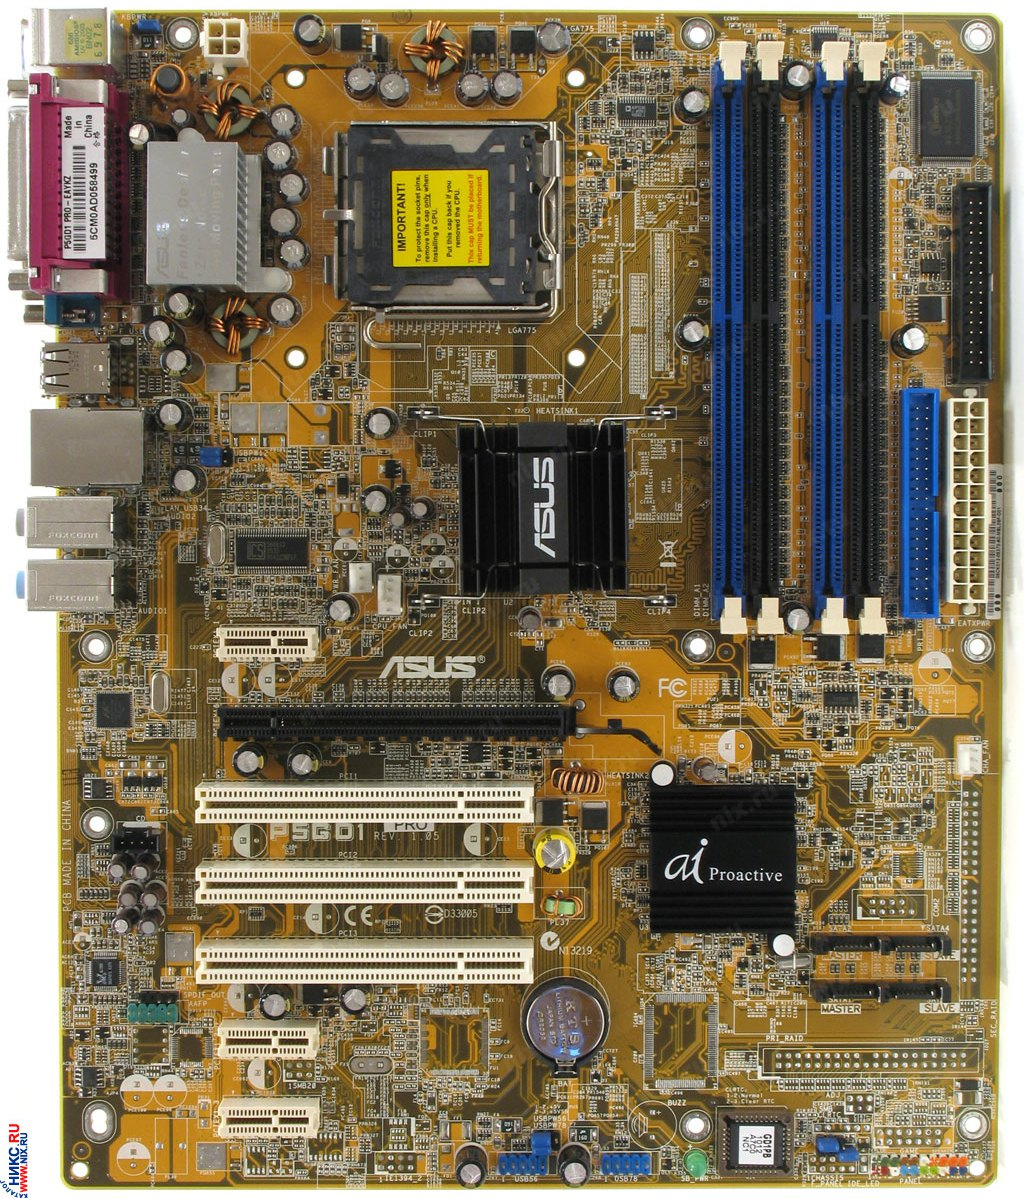 Motherboard ASUS P5GD1 PRO: review, features and reviews 58